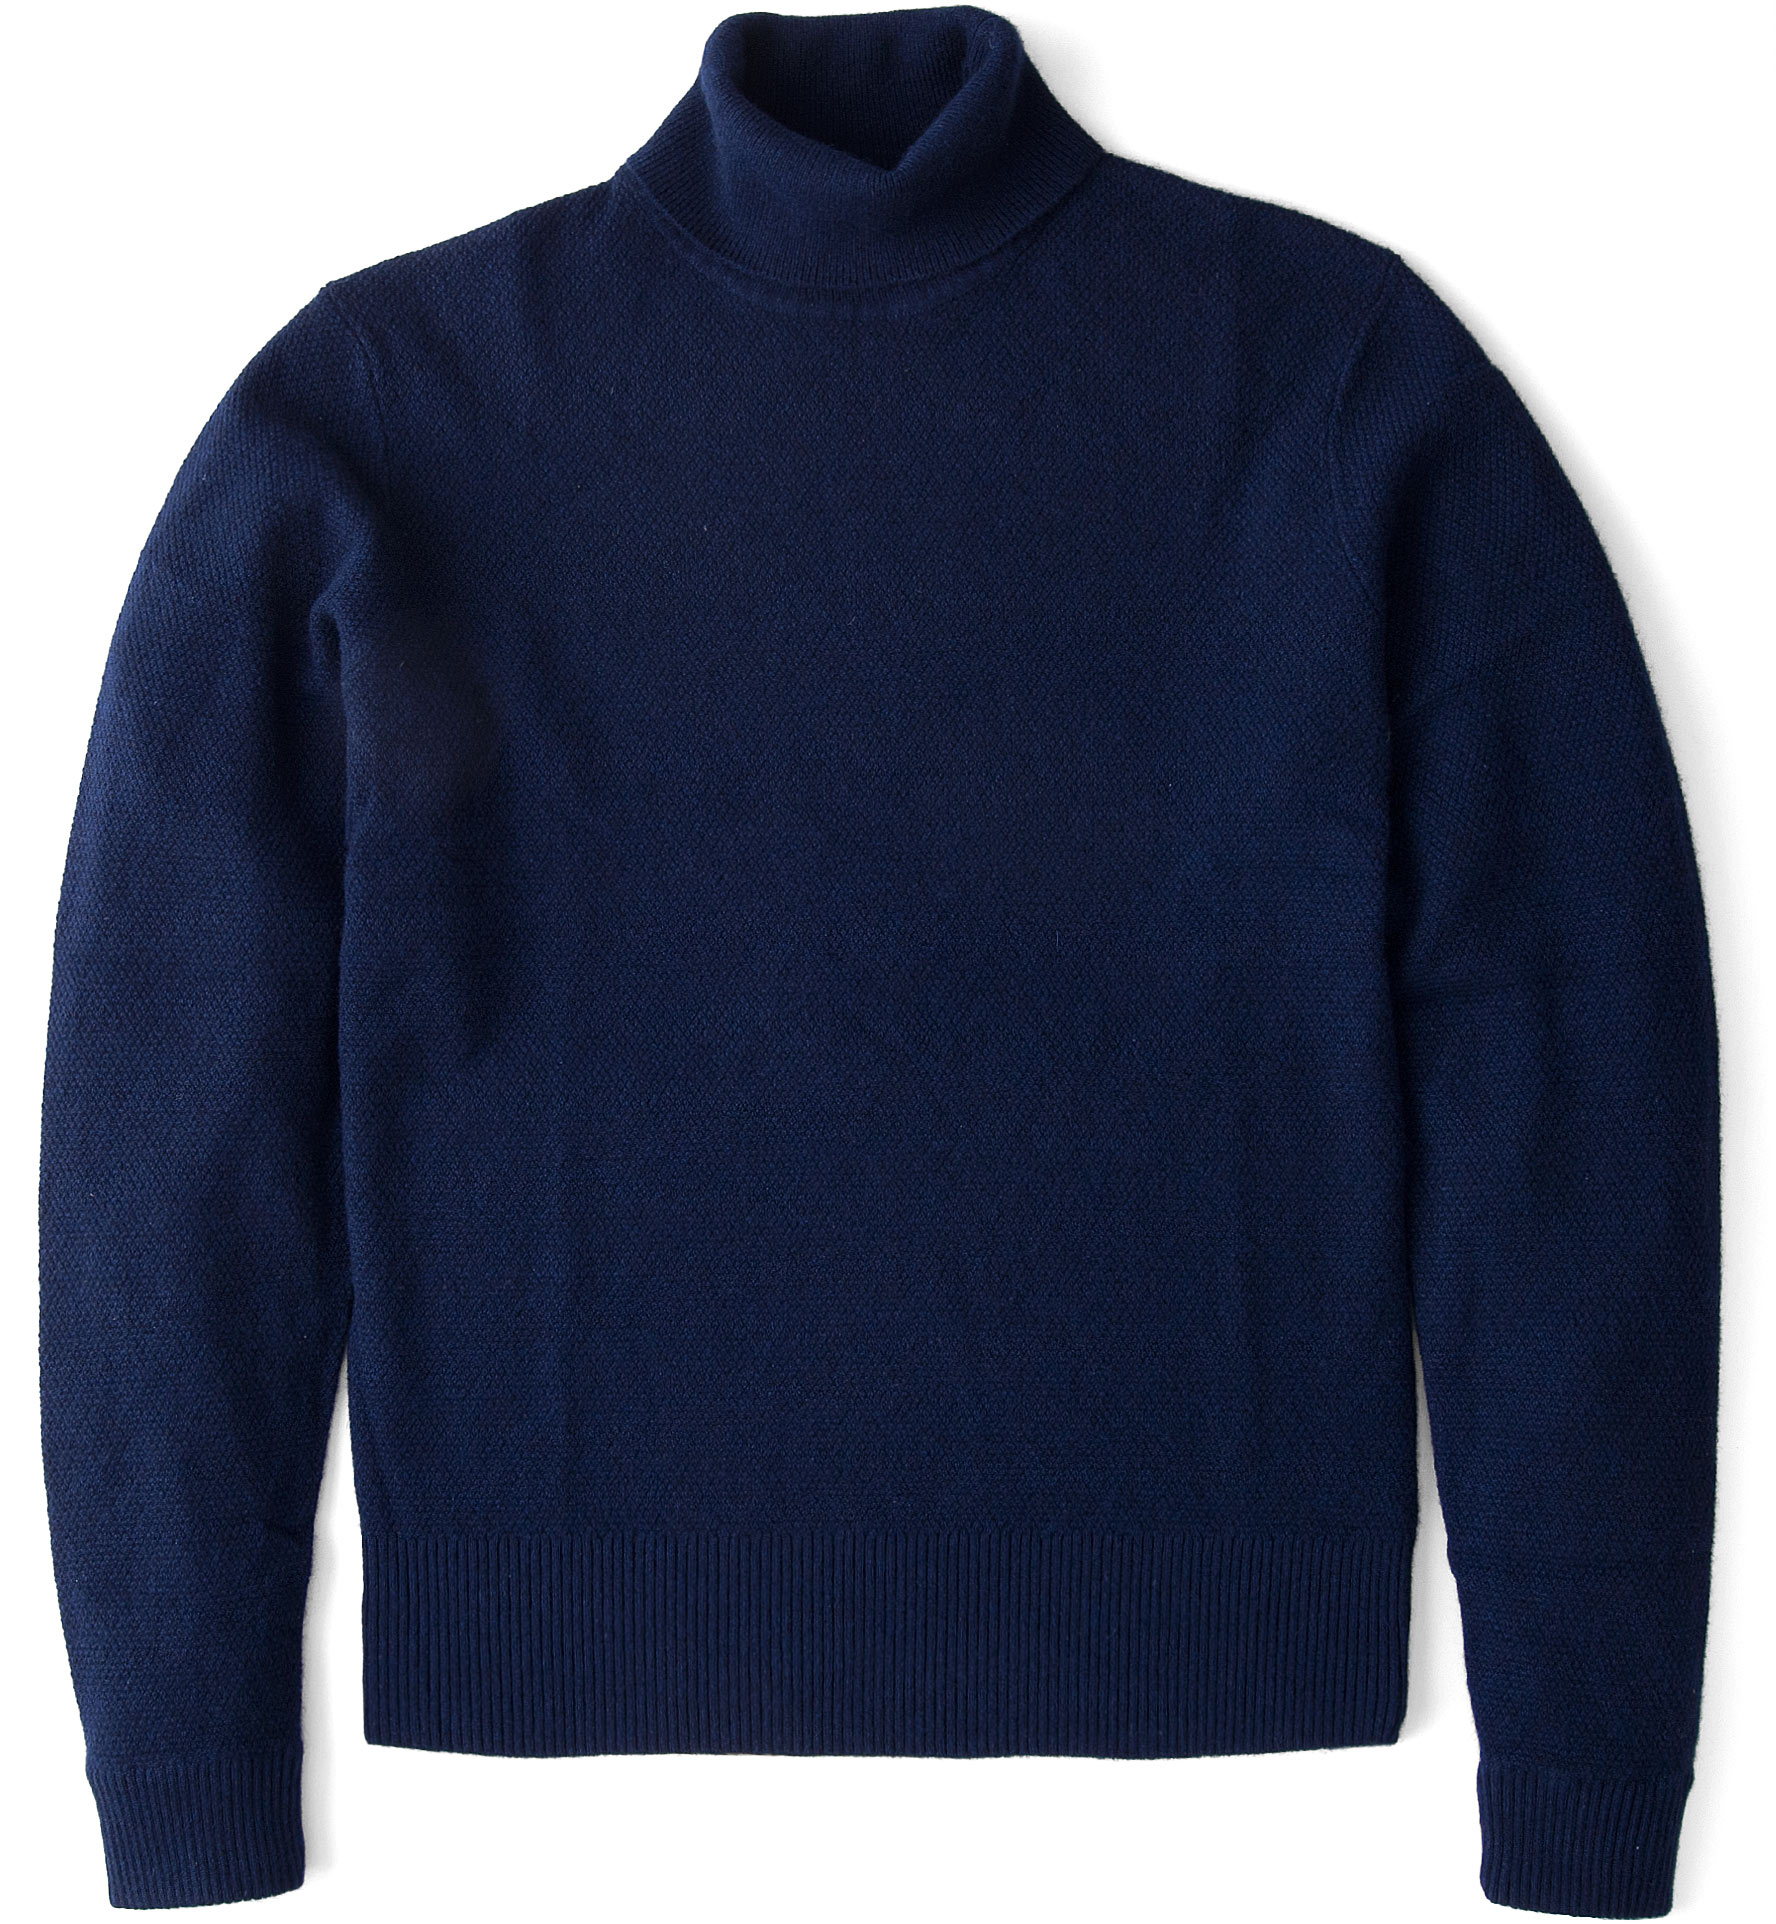 Zoom Image of Navy Cobble Stitch Cashmere Turtleneck Sweater